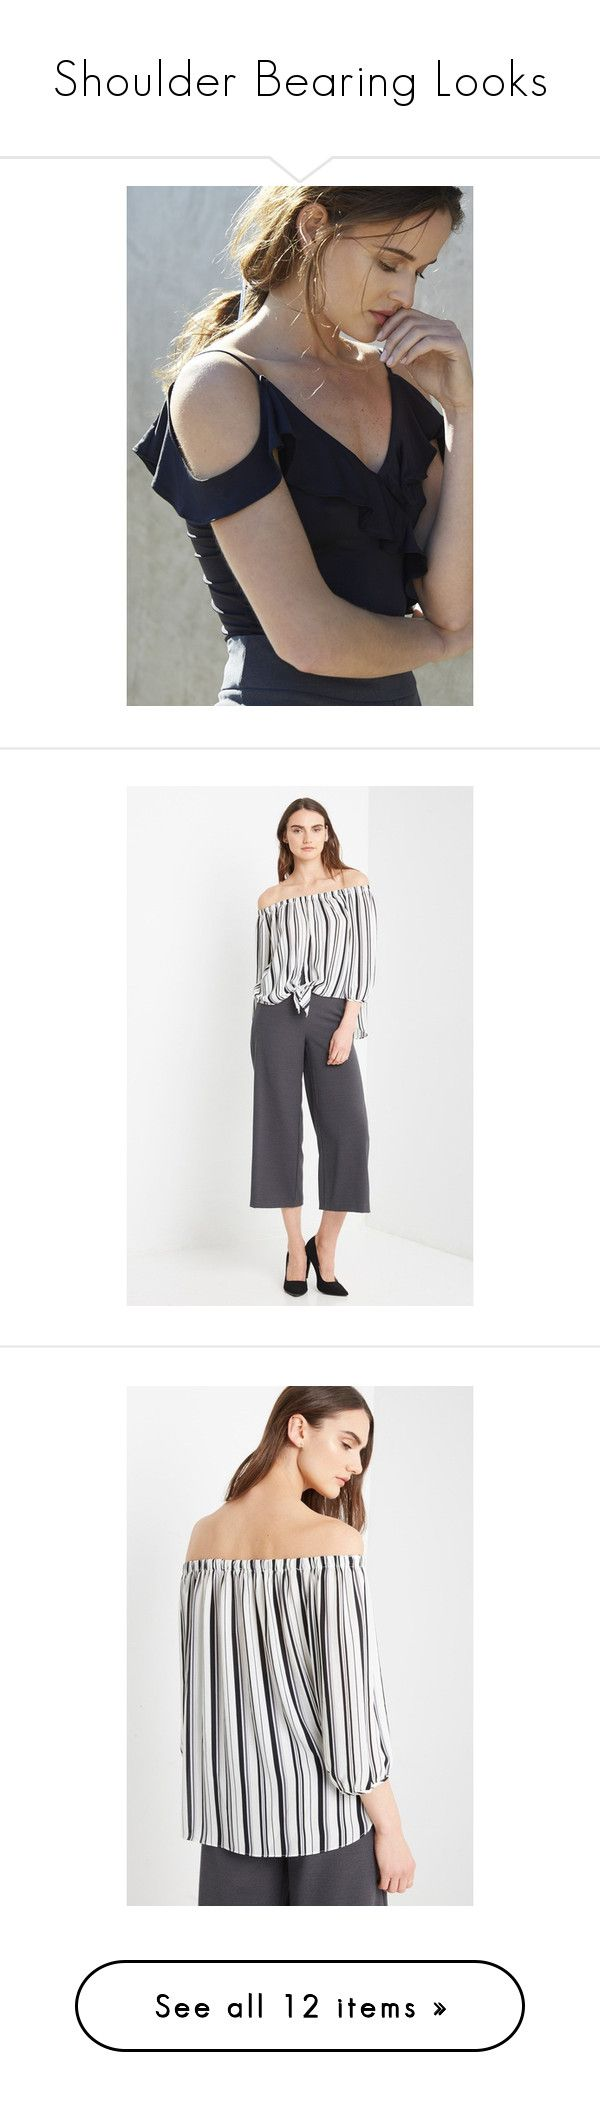 """""""Shoulder Bearing Looks"""" by poshsquare on Polyvore featuring PoshSquareStyle, tops, bubble sleeve top, white top, cut out shoulder top, white open shoulder top, white puff sleeve top, puff sleeve top, cut-out shoulder tops and white cold shoulder top"""